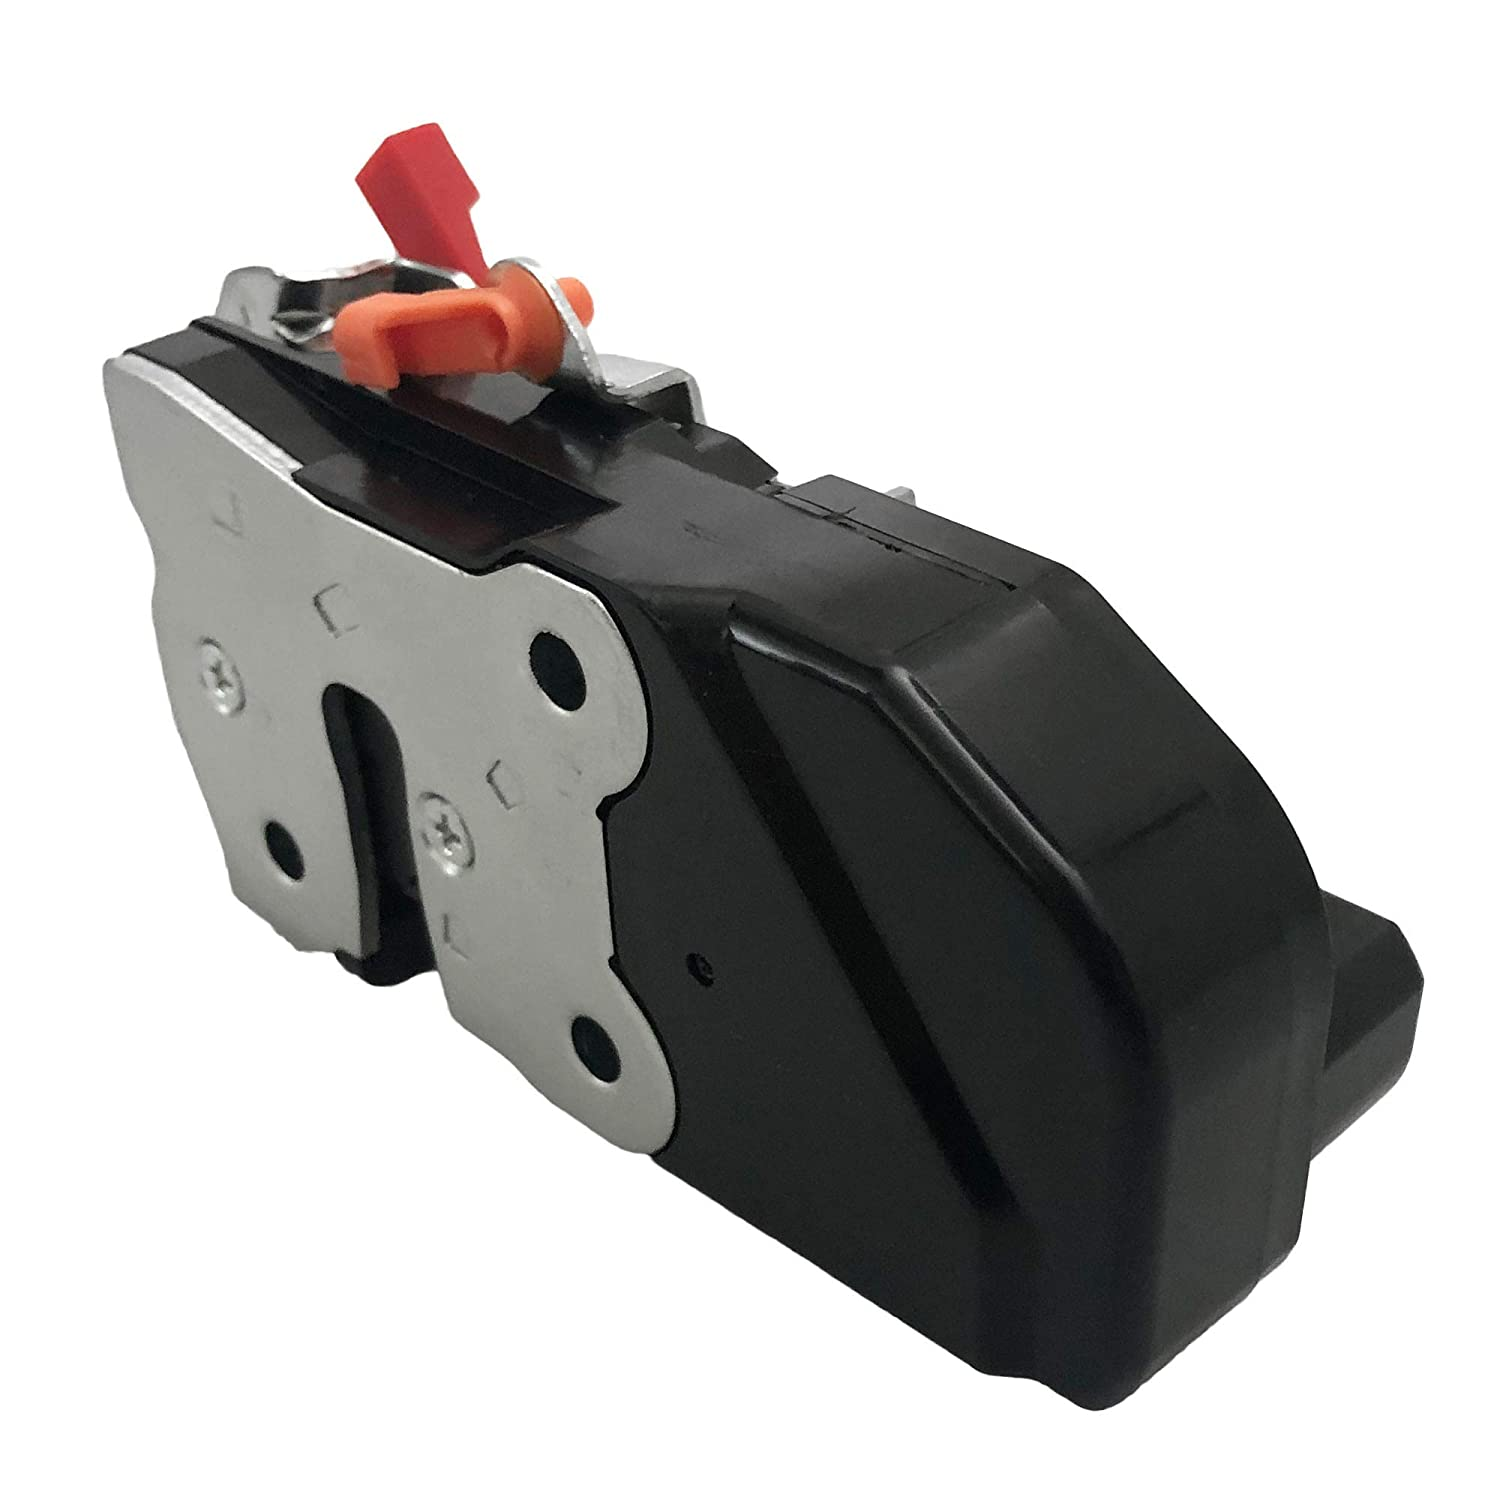 Replaces 931-675 55113367AA 55113367AB 55113367AC 55394937AC 55394937AD 55394937AE MYSMOT Front Left Driver Side Door Latch /& Lock Actuator Assembly for 2005-2010 Jeep Grand Cherokee